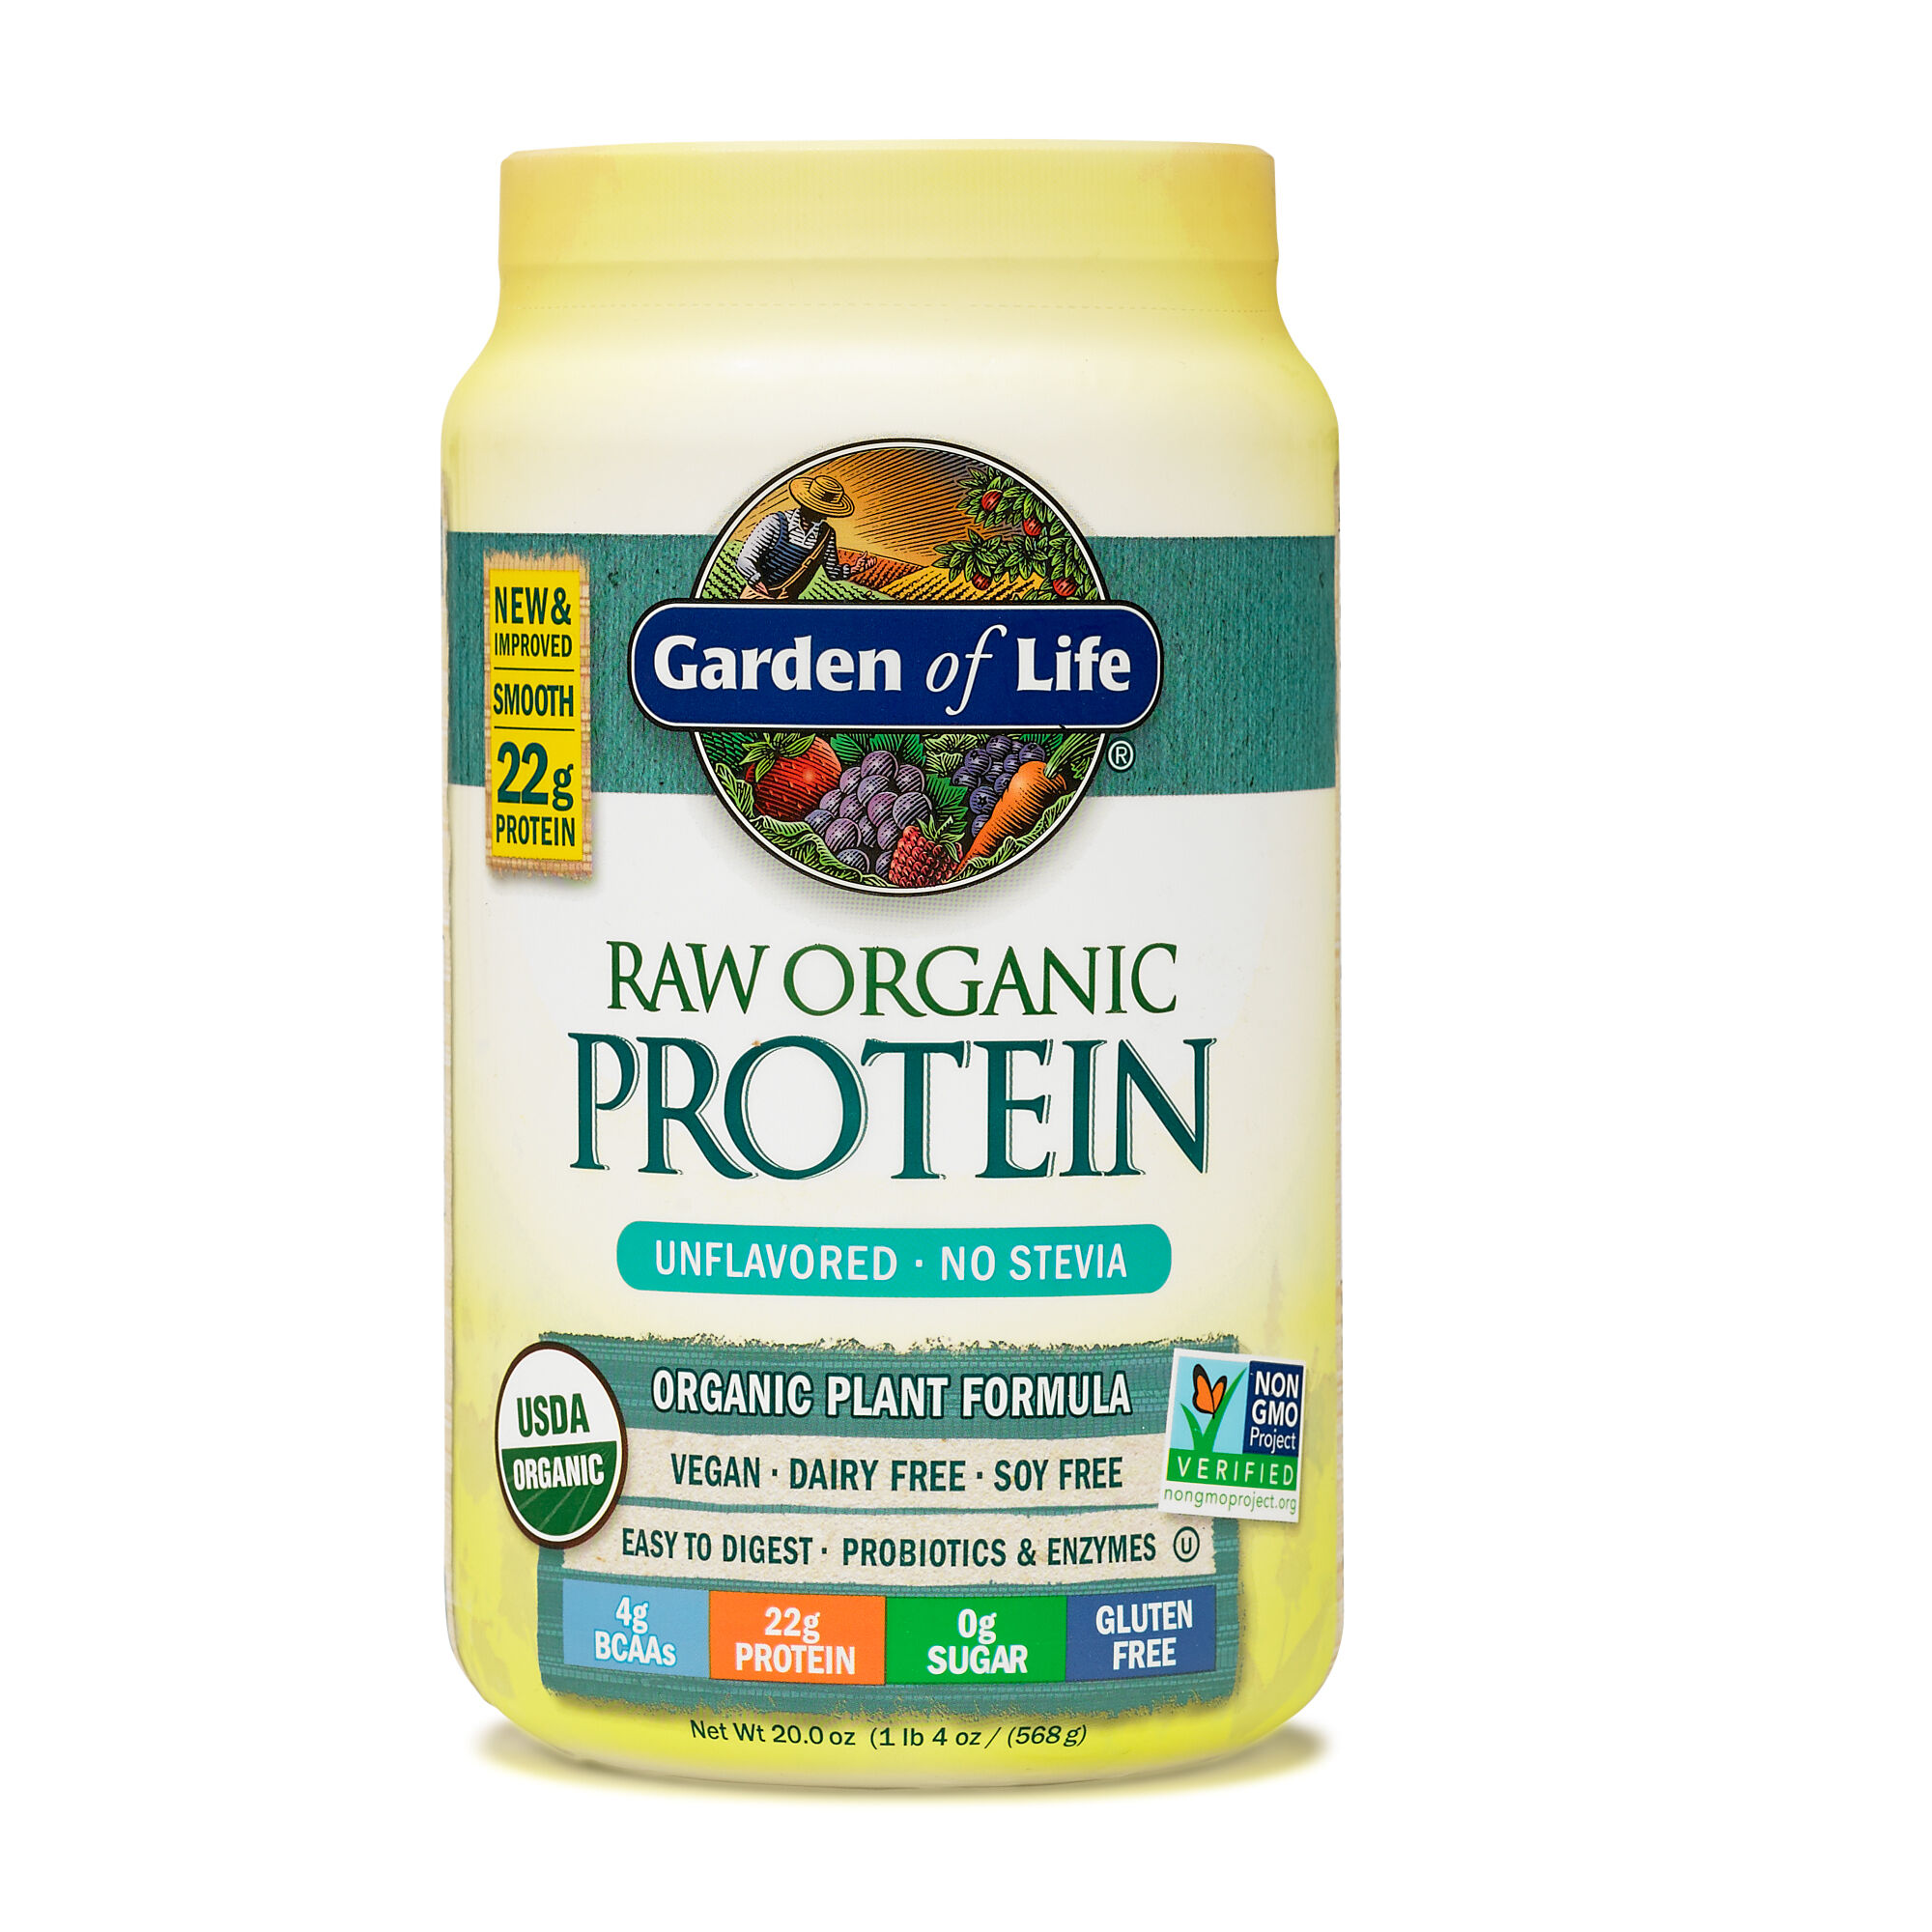 supplement re farther want into whole probiotics life and at ingredients or kids the food looking multi harmful see supplements to garden assure if raw journey all taking of finding img starting vitamin you just a